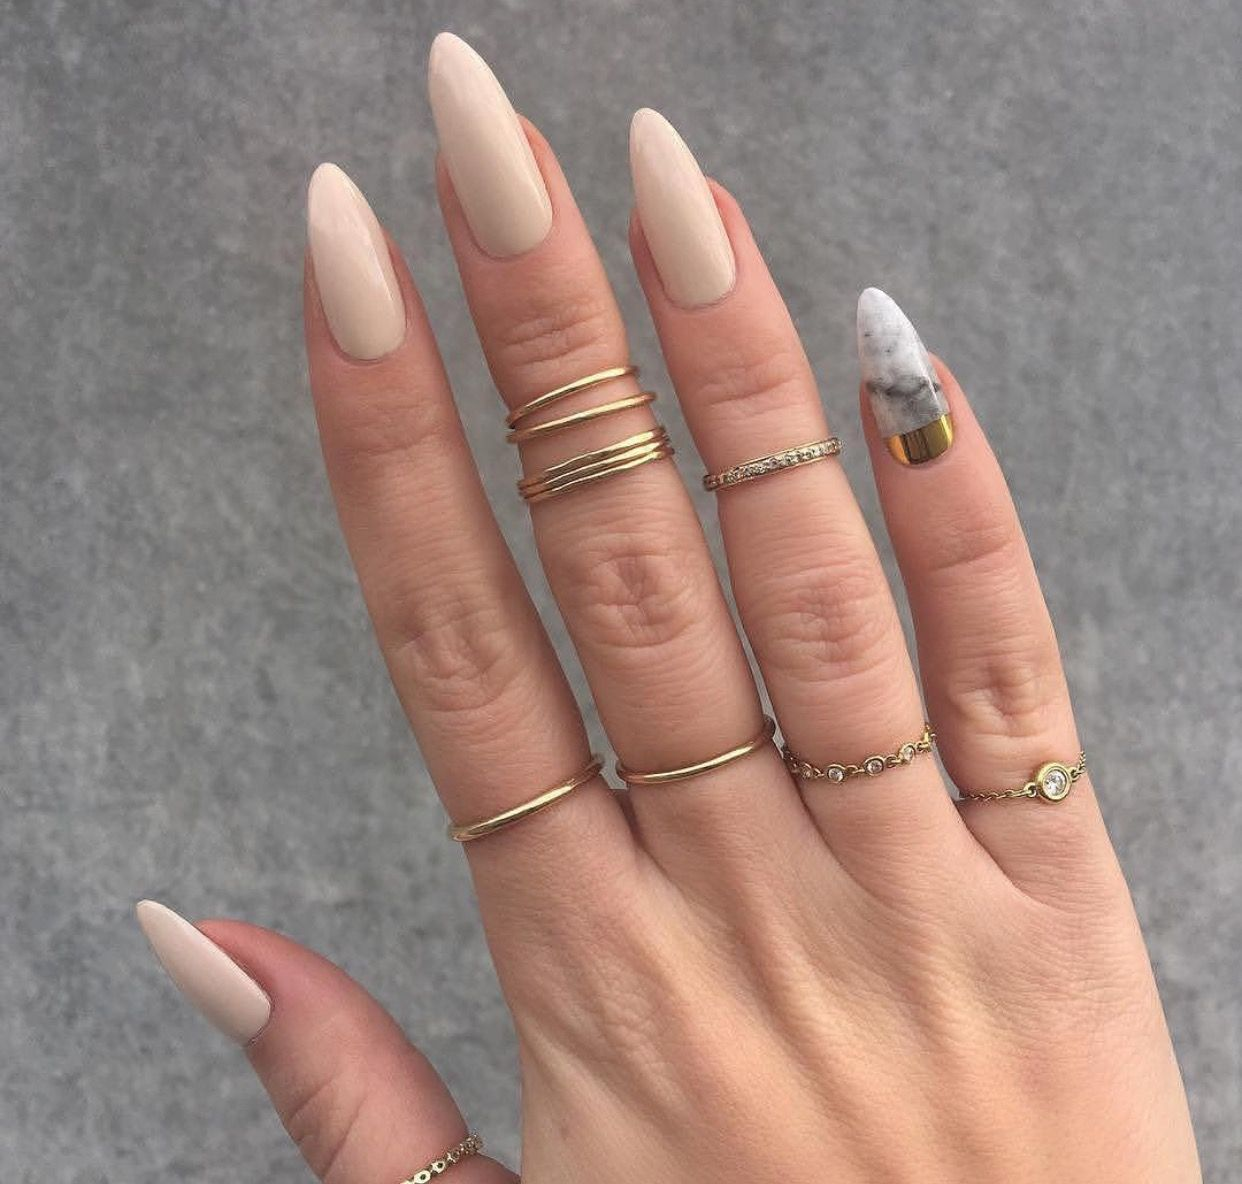 Nude and marble nails | Nail Inspo | Pinterest